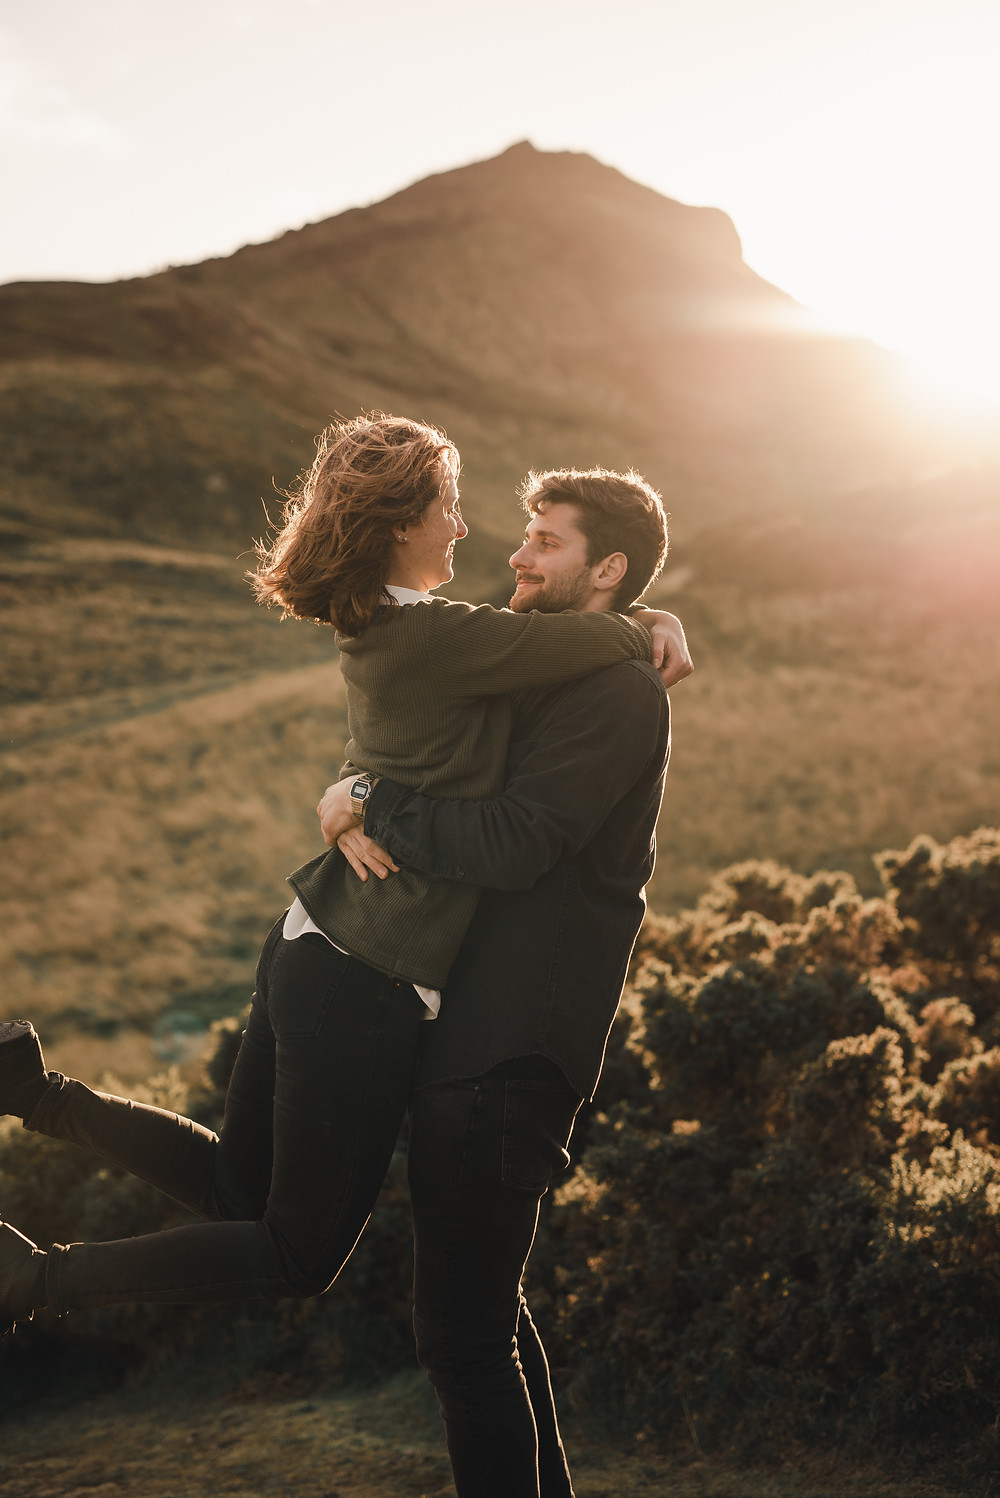 A couple who is in love hiked Arthurs seat to watch the sunset. On the way the enjoy the warmth of the sun, sitting down on the rocks in Holyrood Park and playfully dance in the grass on the hill, overlooking Edinburgh.